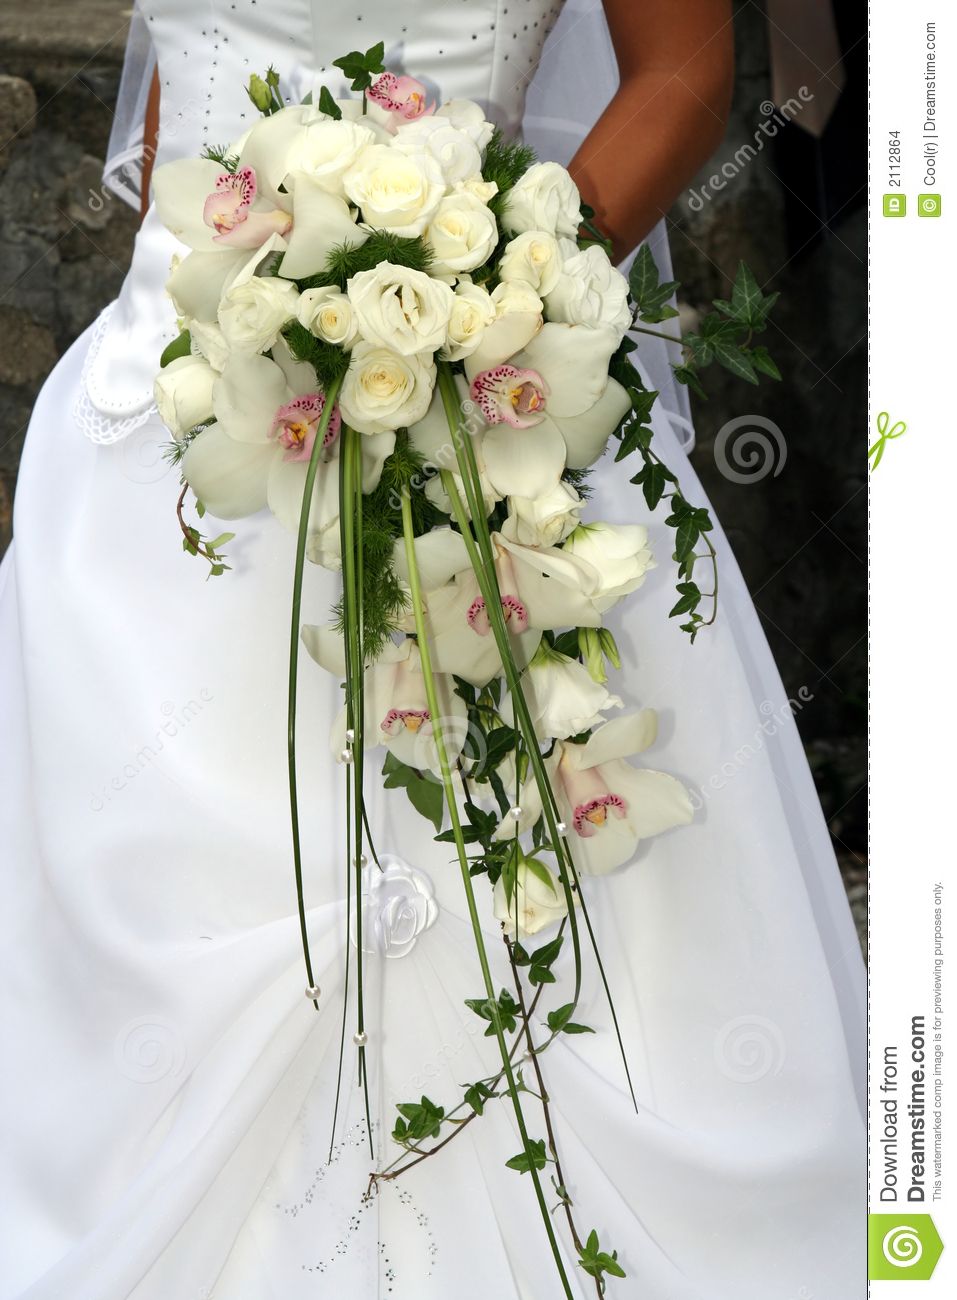 Wedding Bouquet From White Orchid Stock Photo Image Of Married